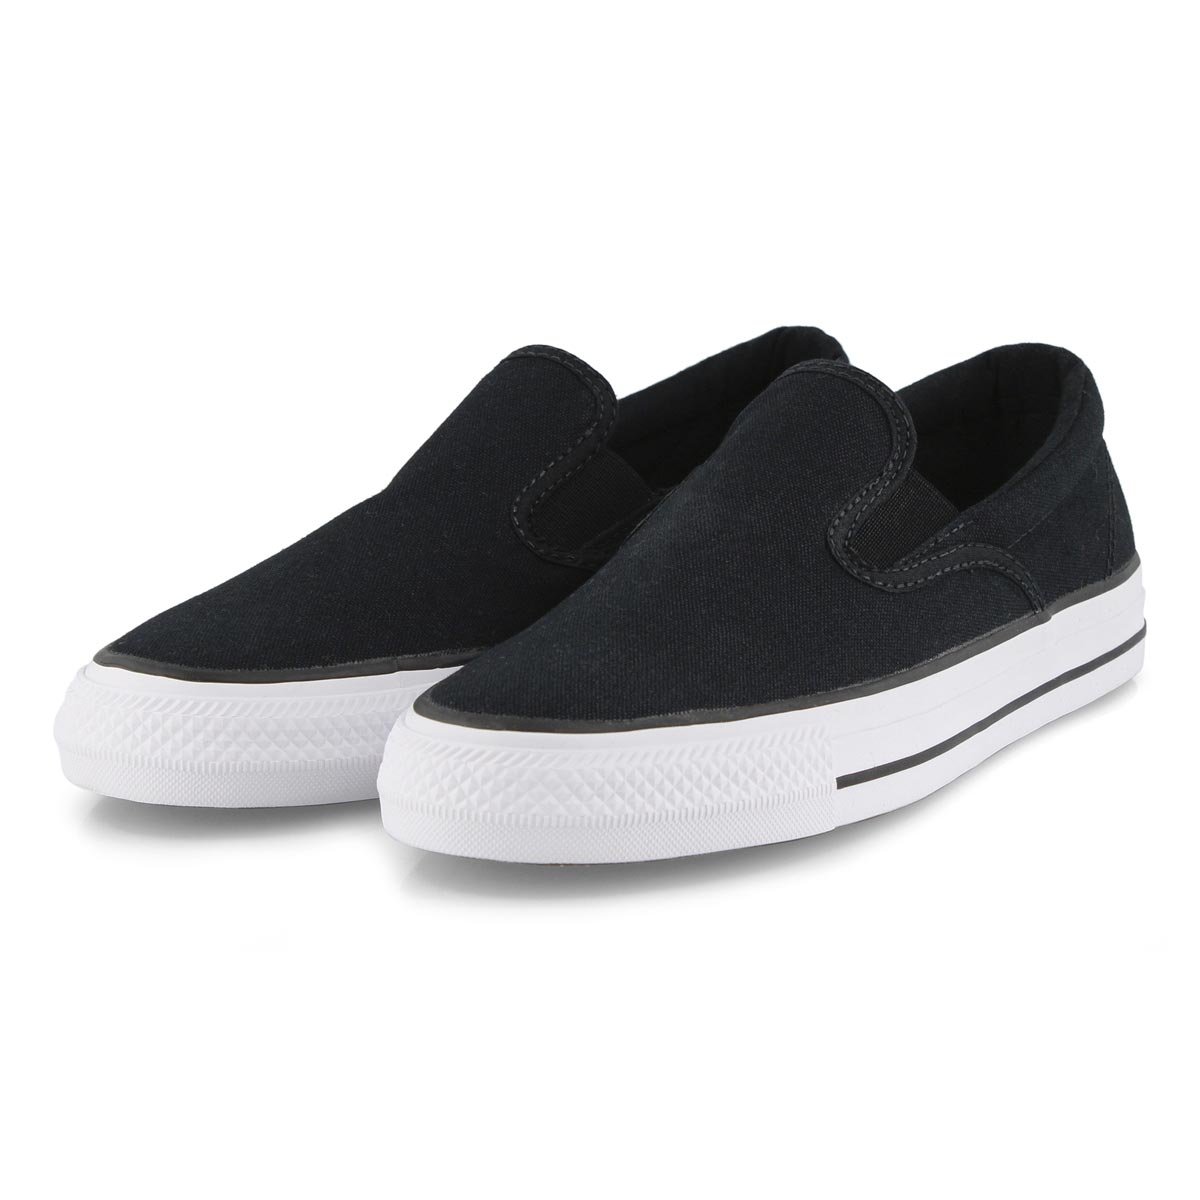 Lds CTAS Double Gore black slip on snkr